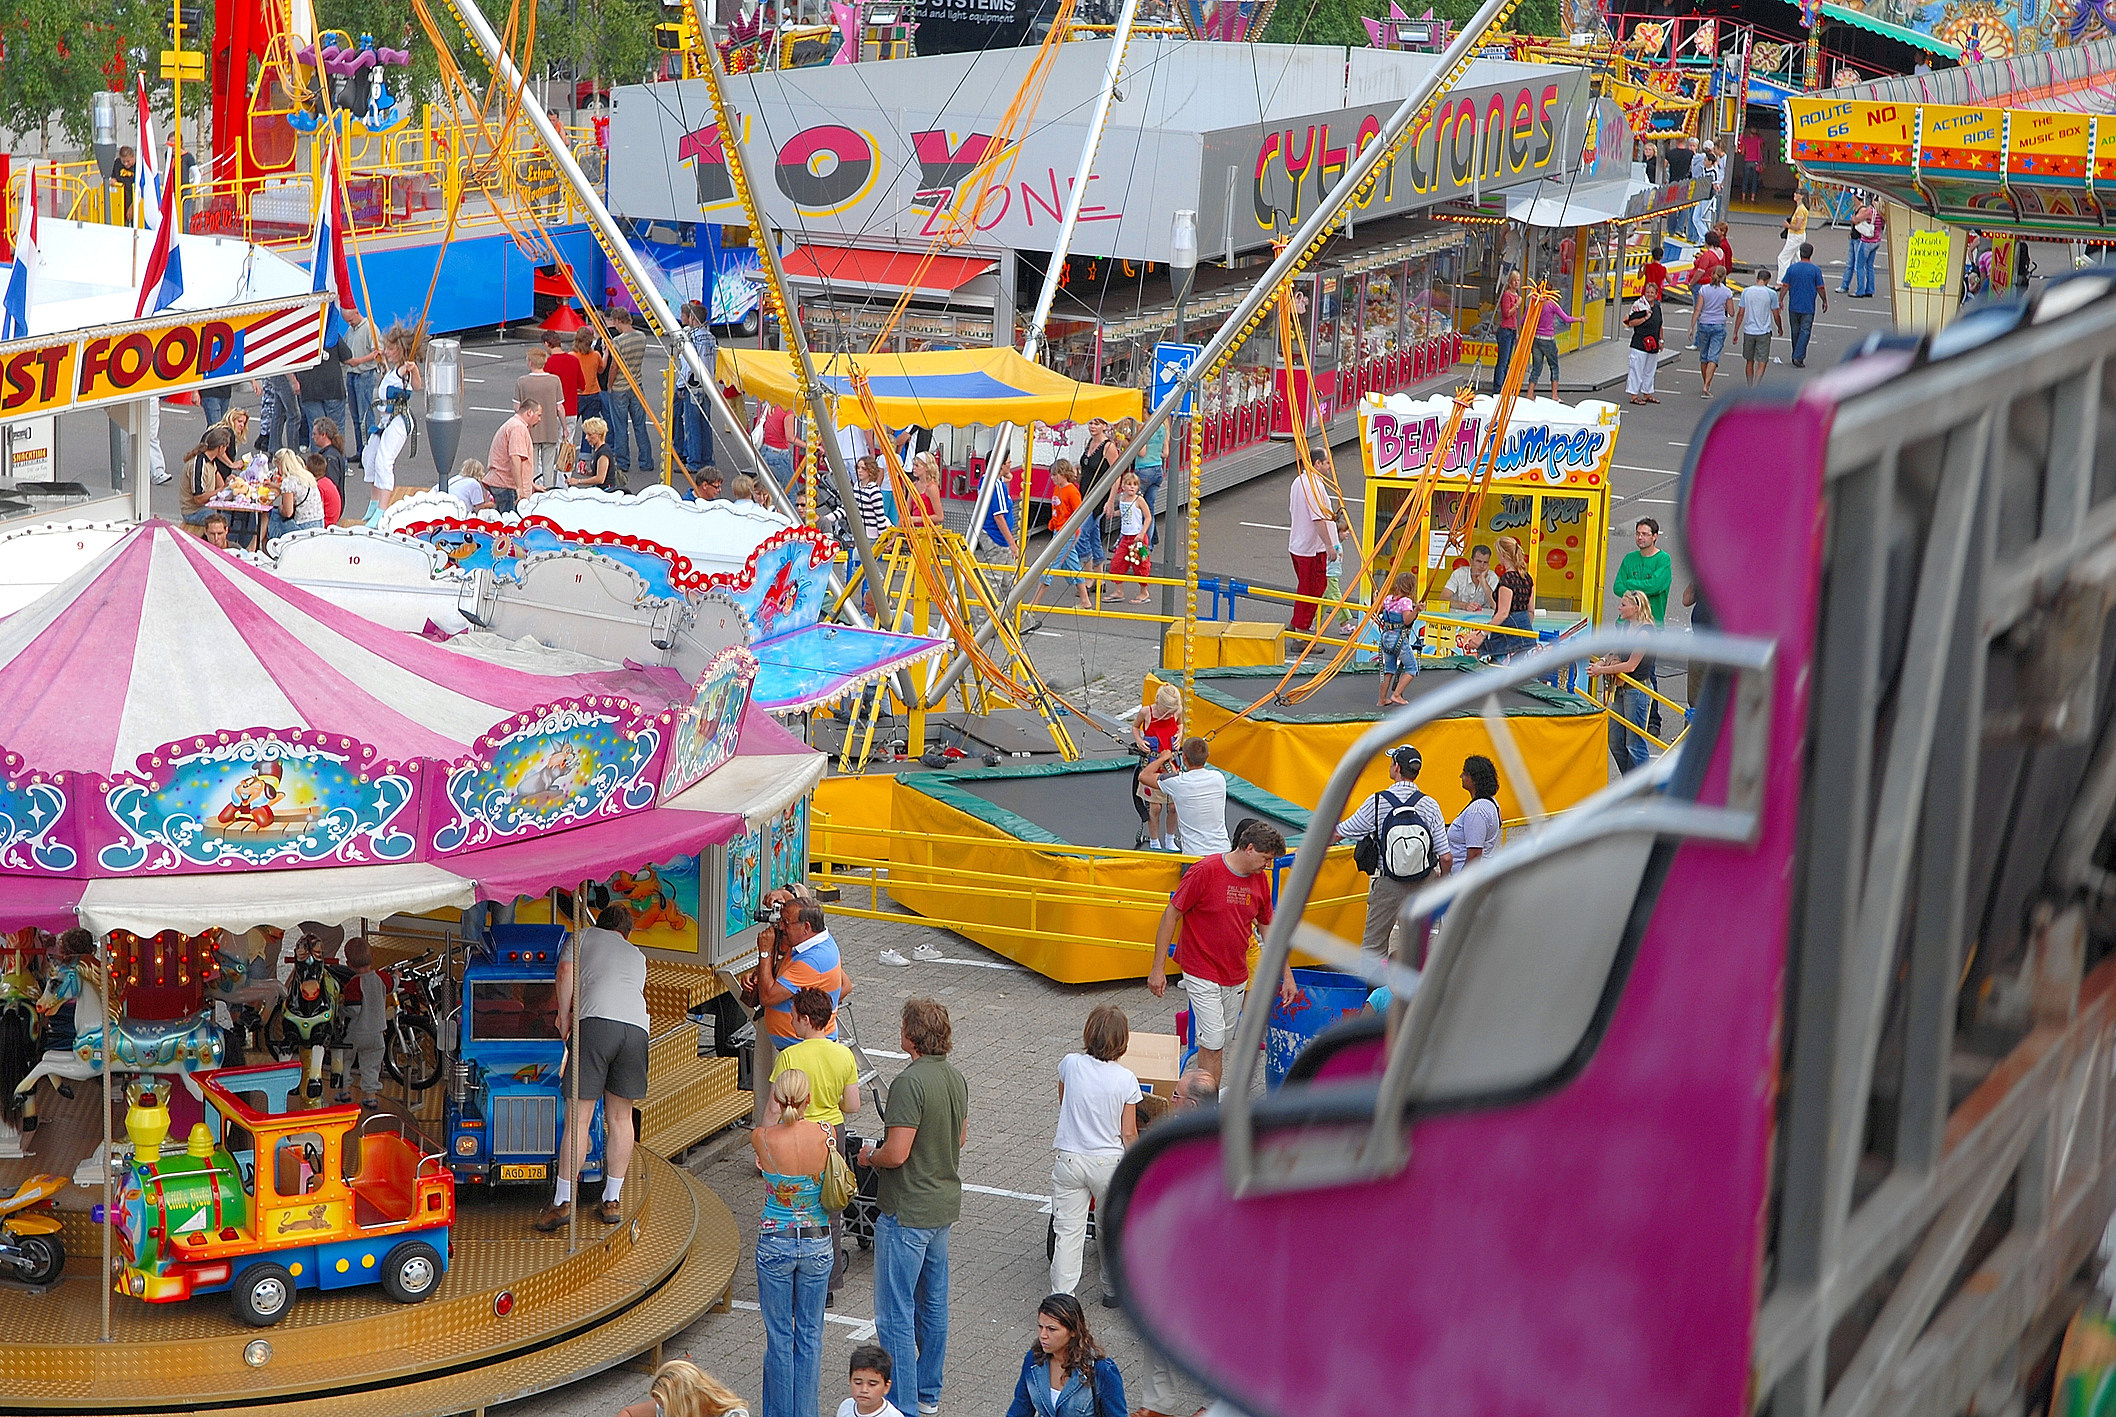 High angle view of fairground park